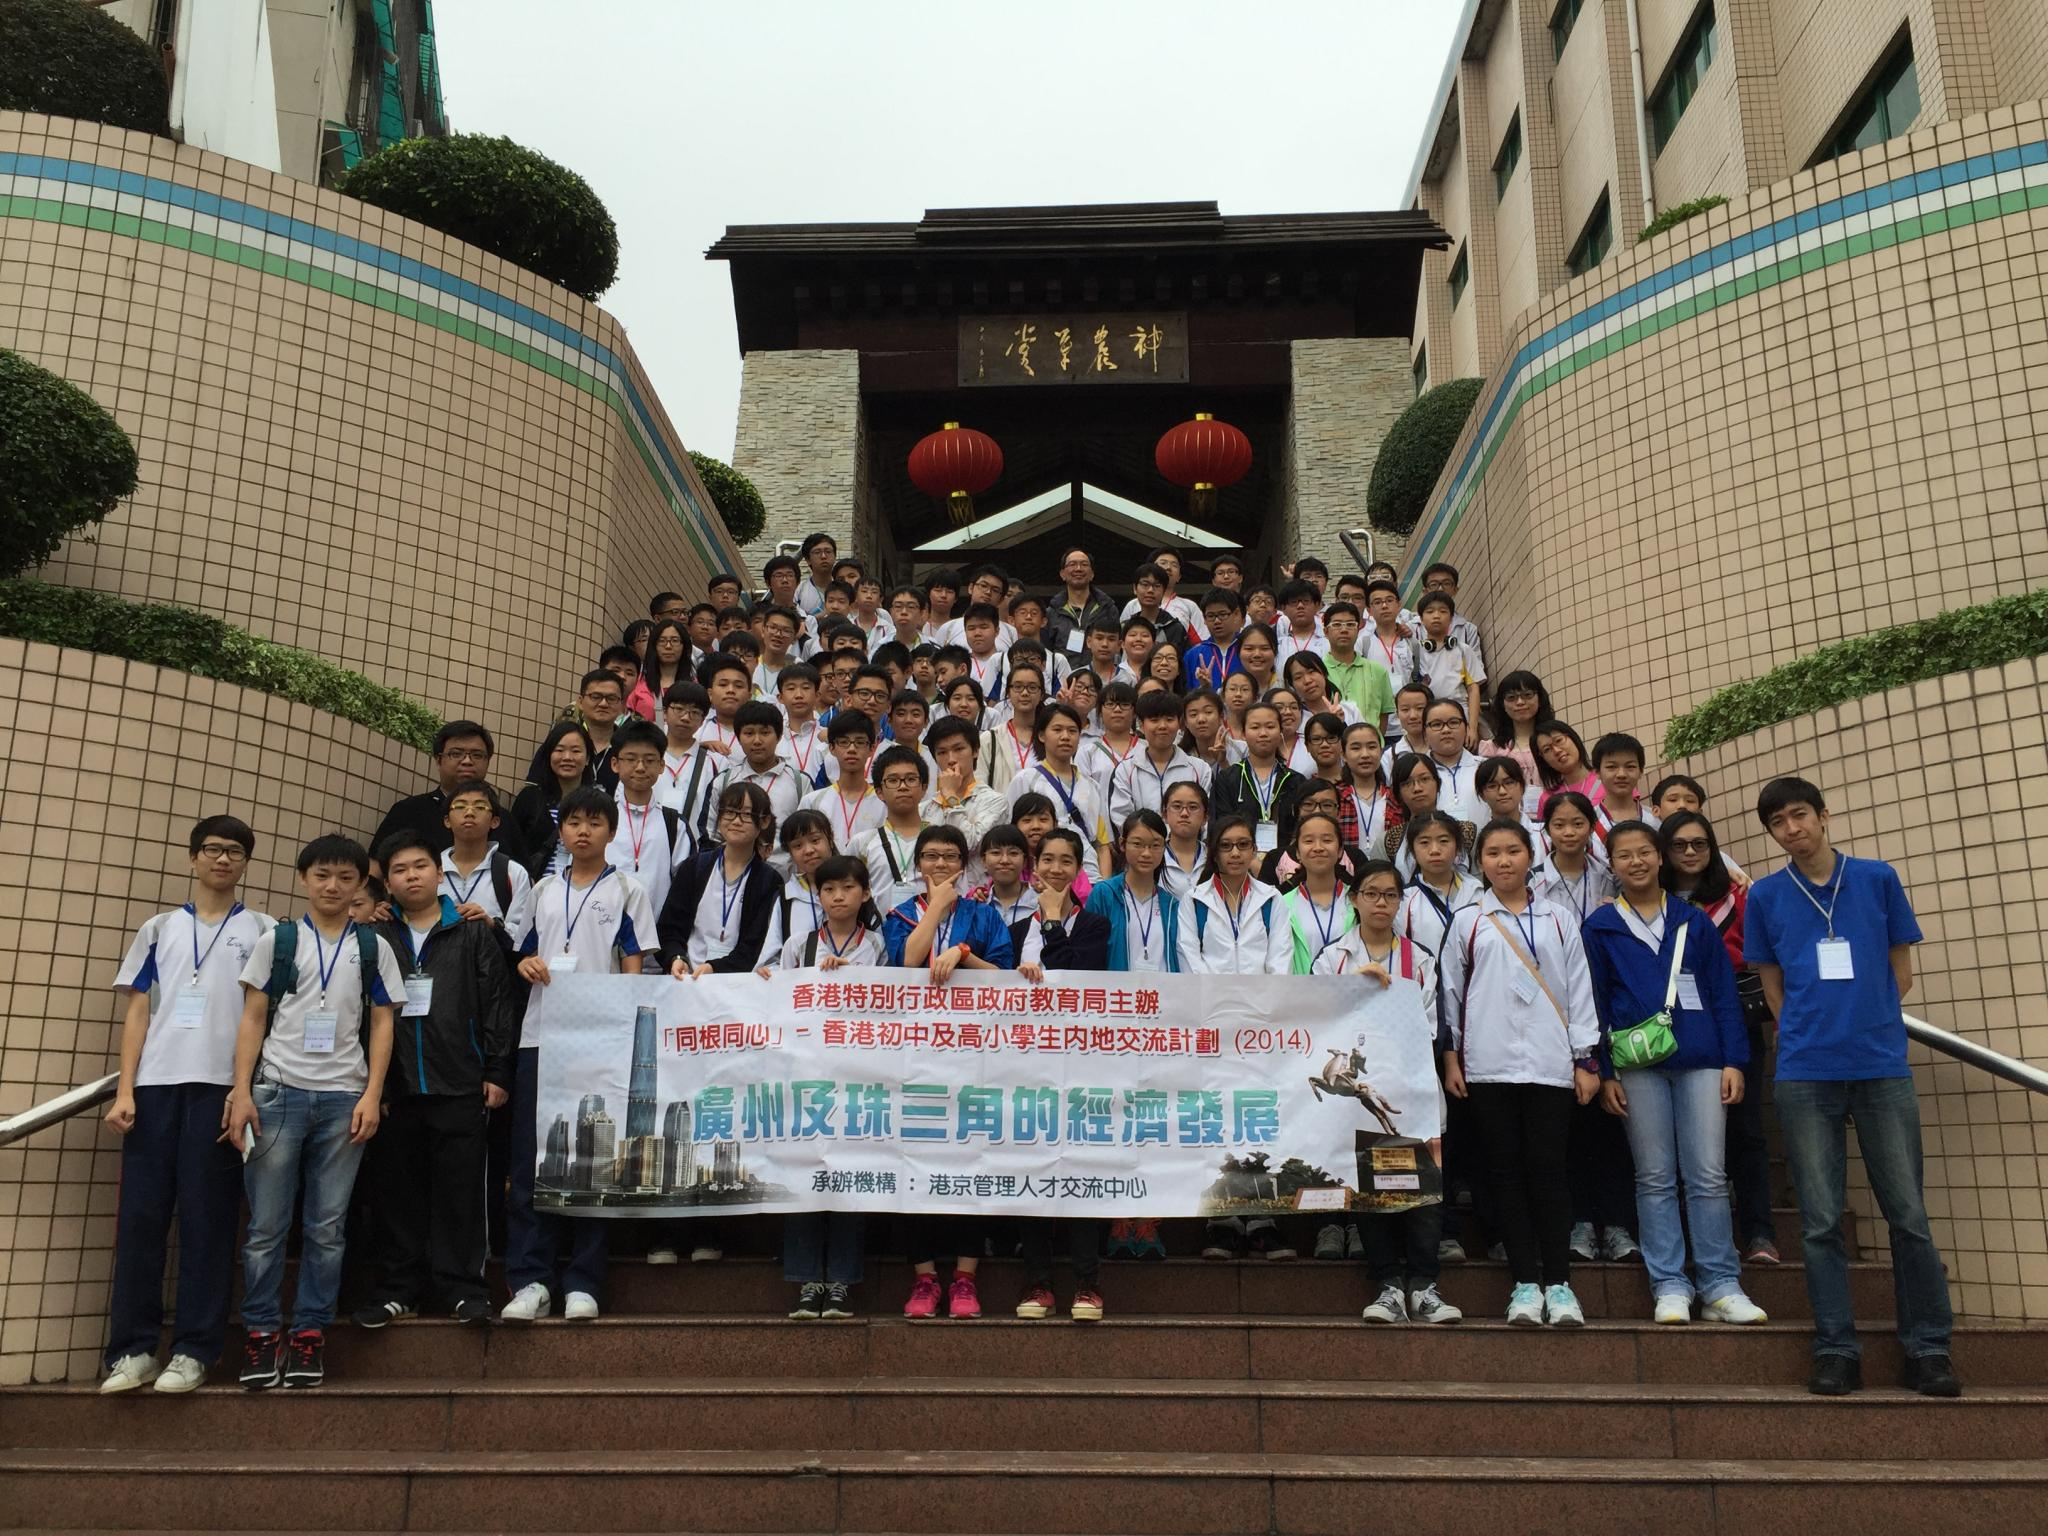 Students and teachers take a photo in front of a Chinese herbal garden.